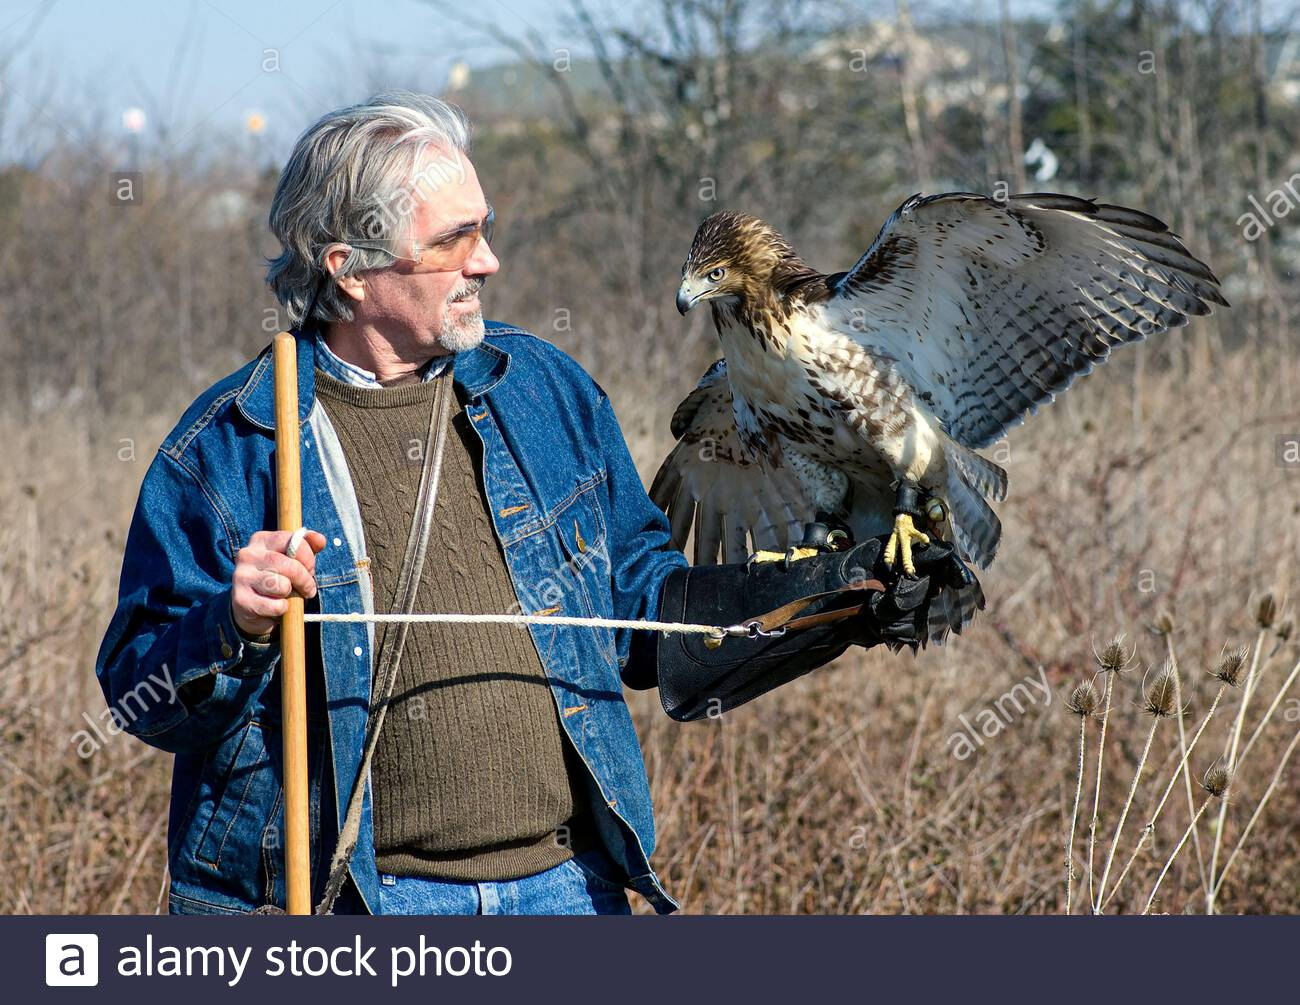 falconer-with-juvenile-red-tailed-hawk-b